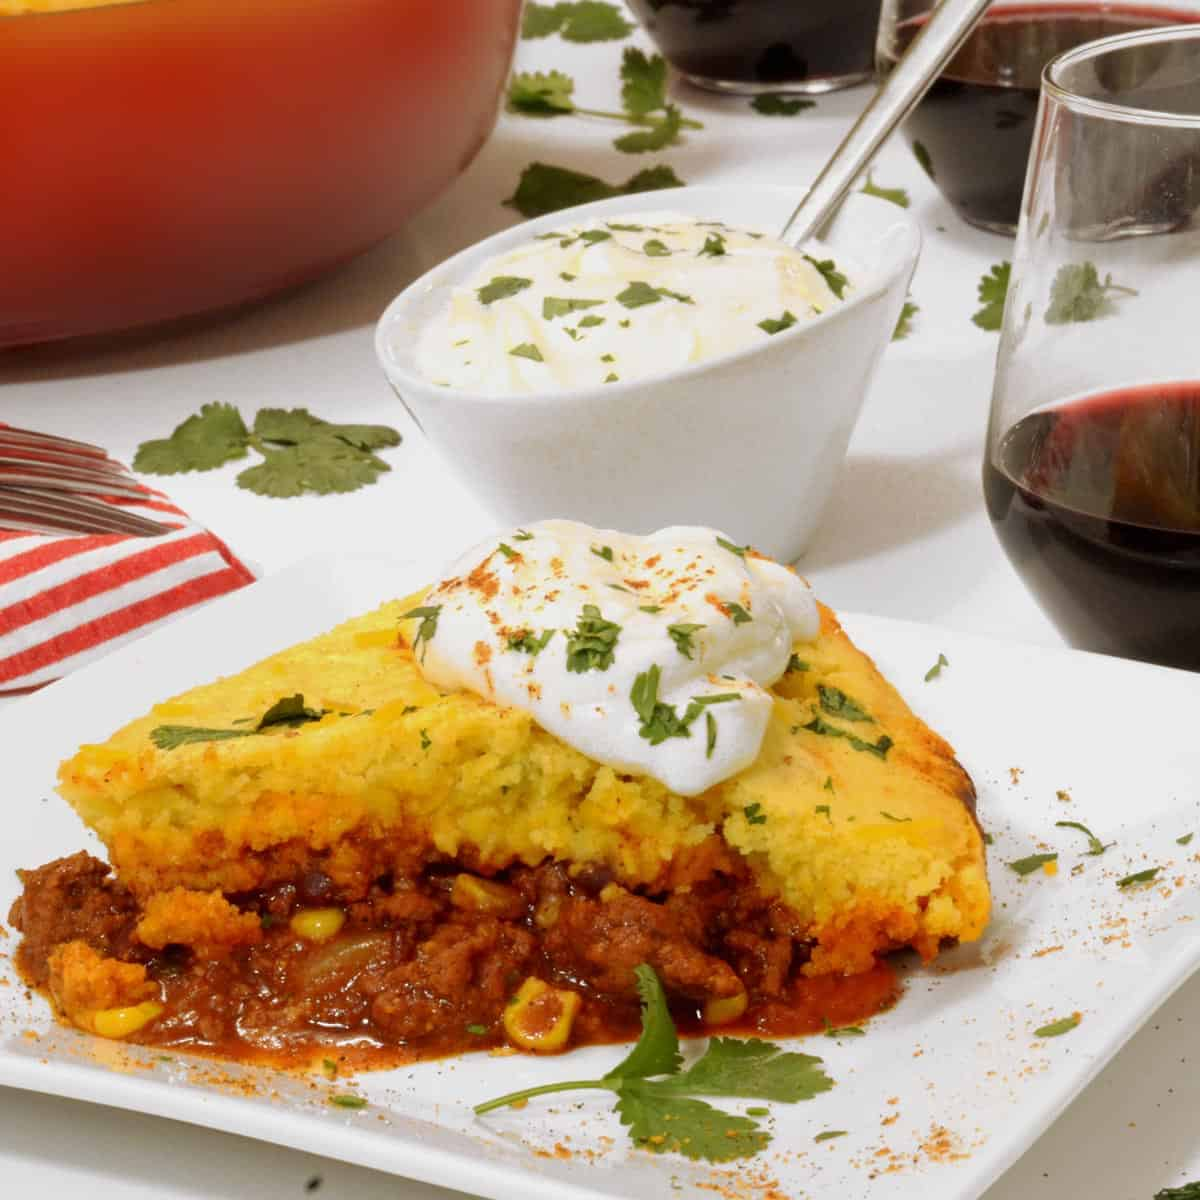 A slice of chili cornbread casserole on a plate.